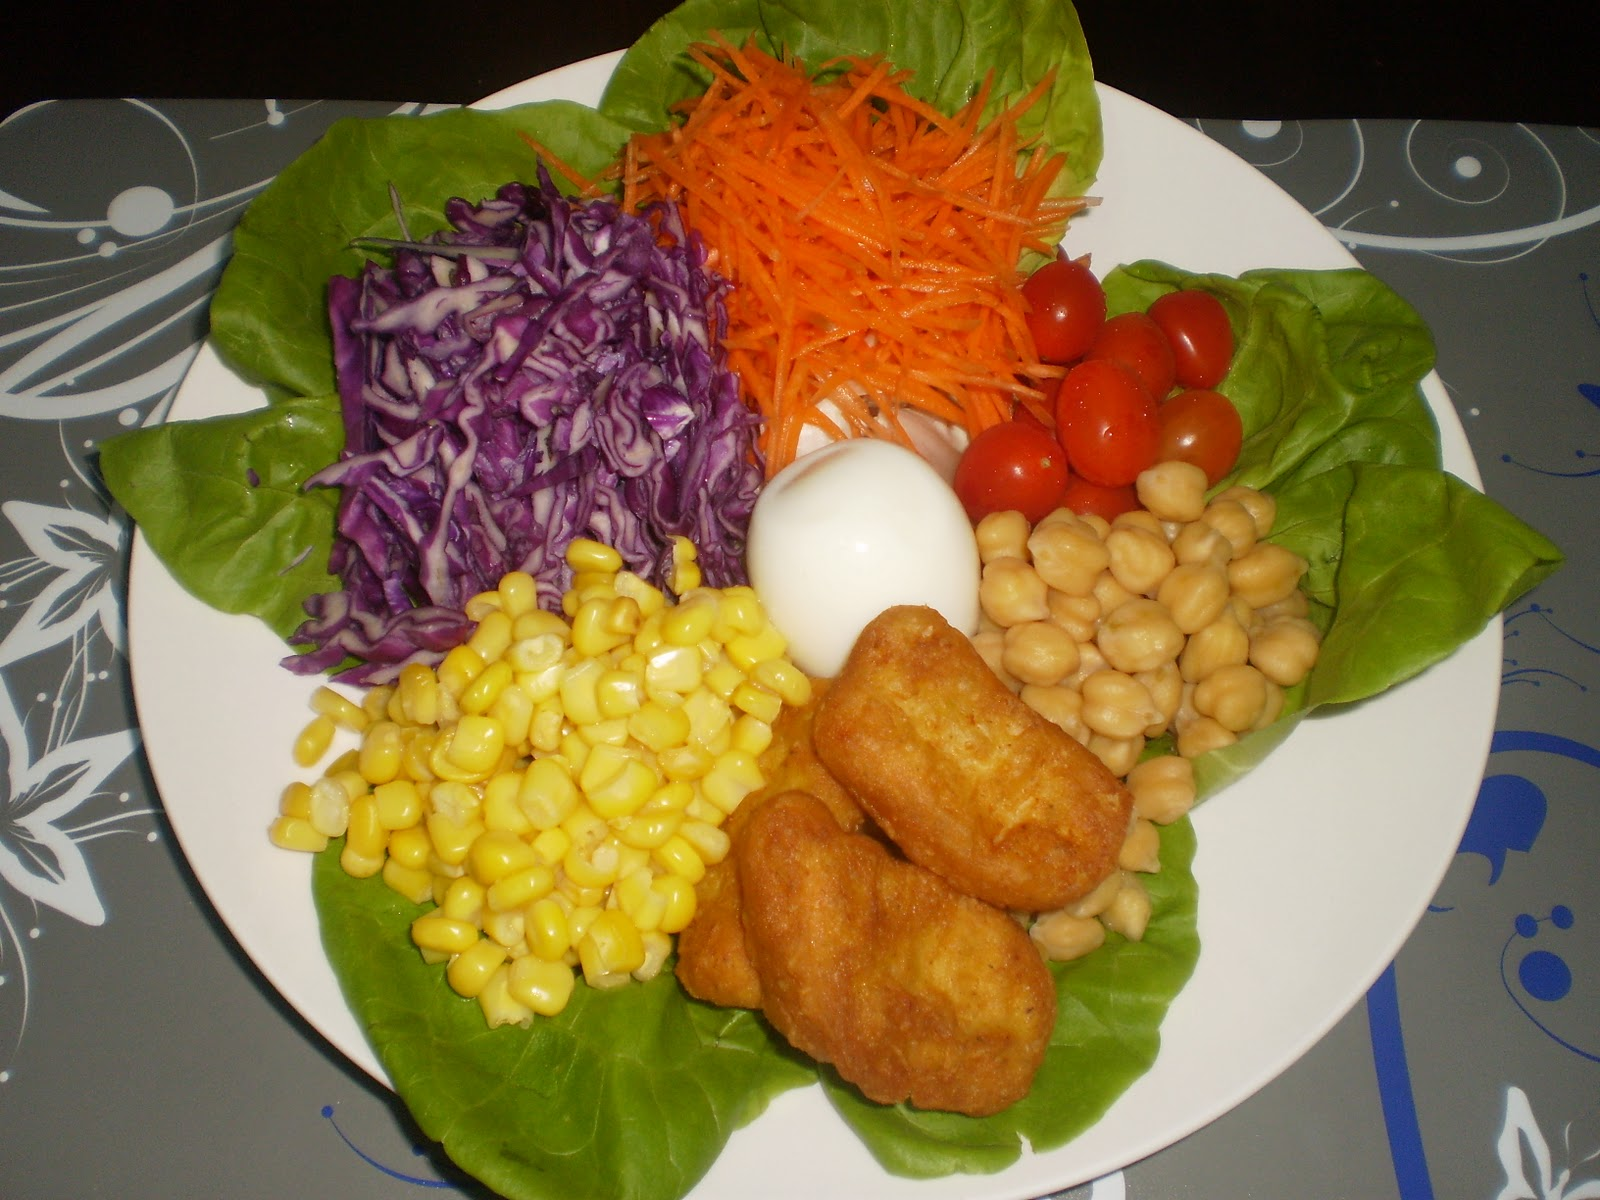 Salad with Diet Thousand Island Dressing (From a Salad Bar)